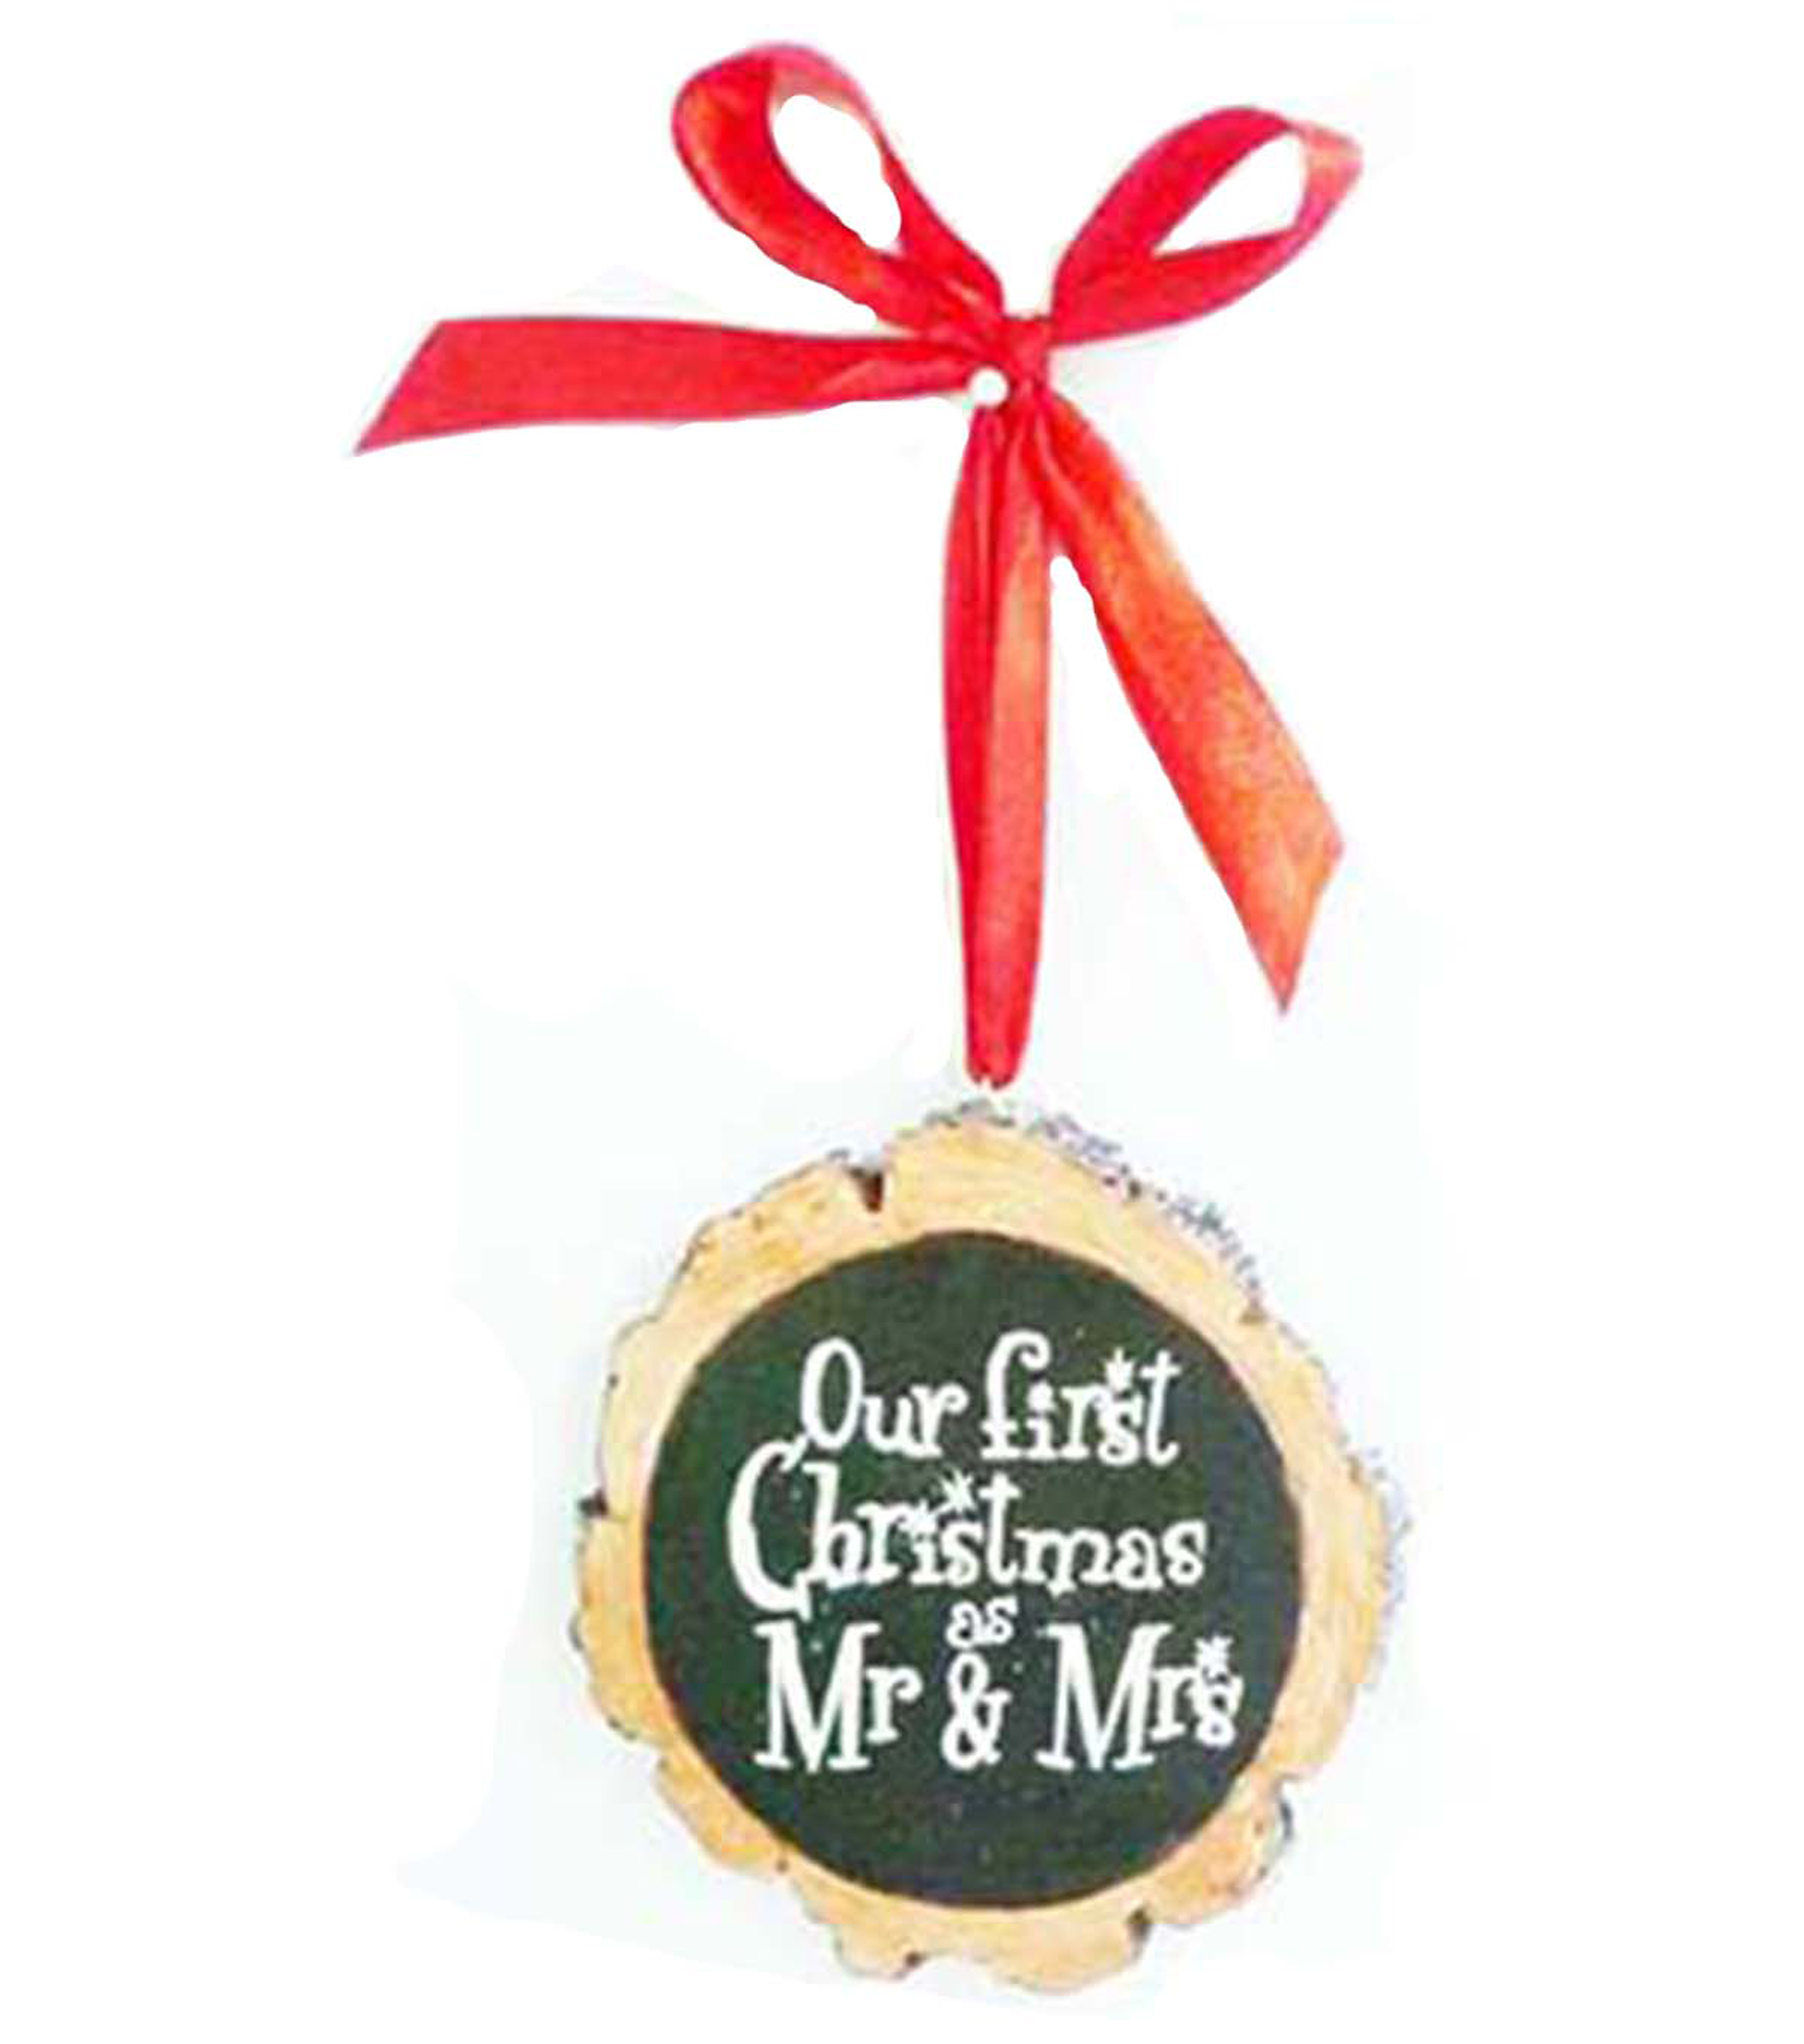 makeru0027s holiday christmas ornament our first christmas as mr mrs